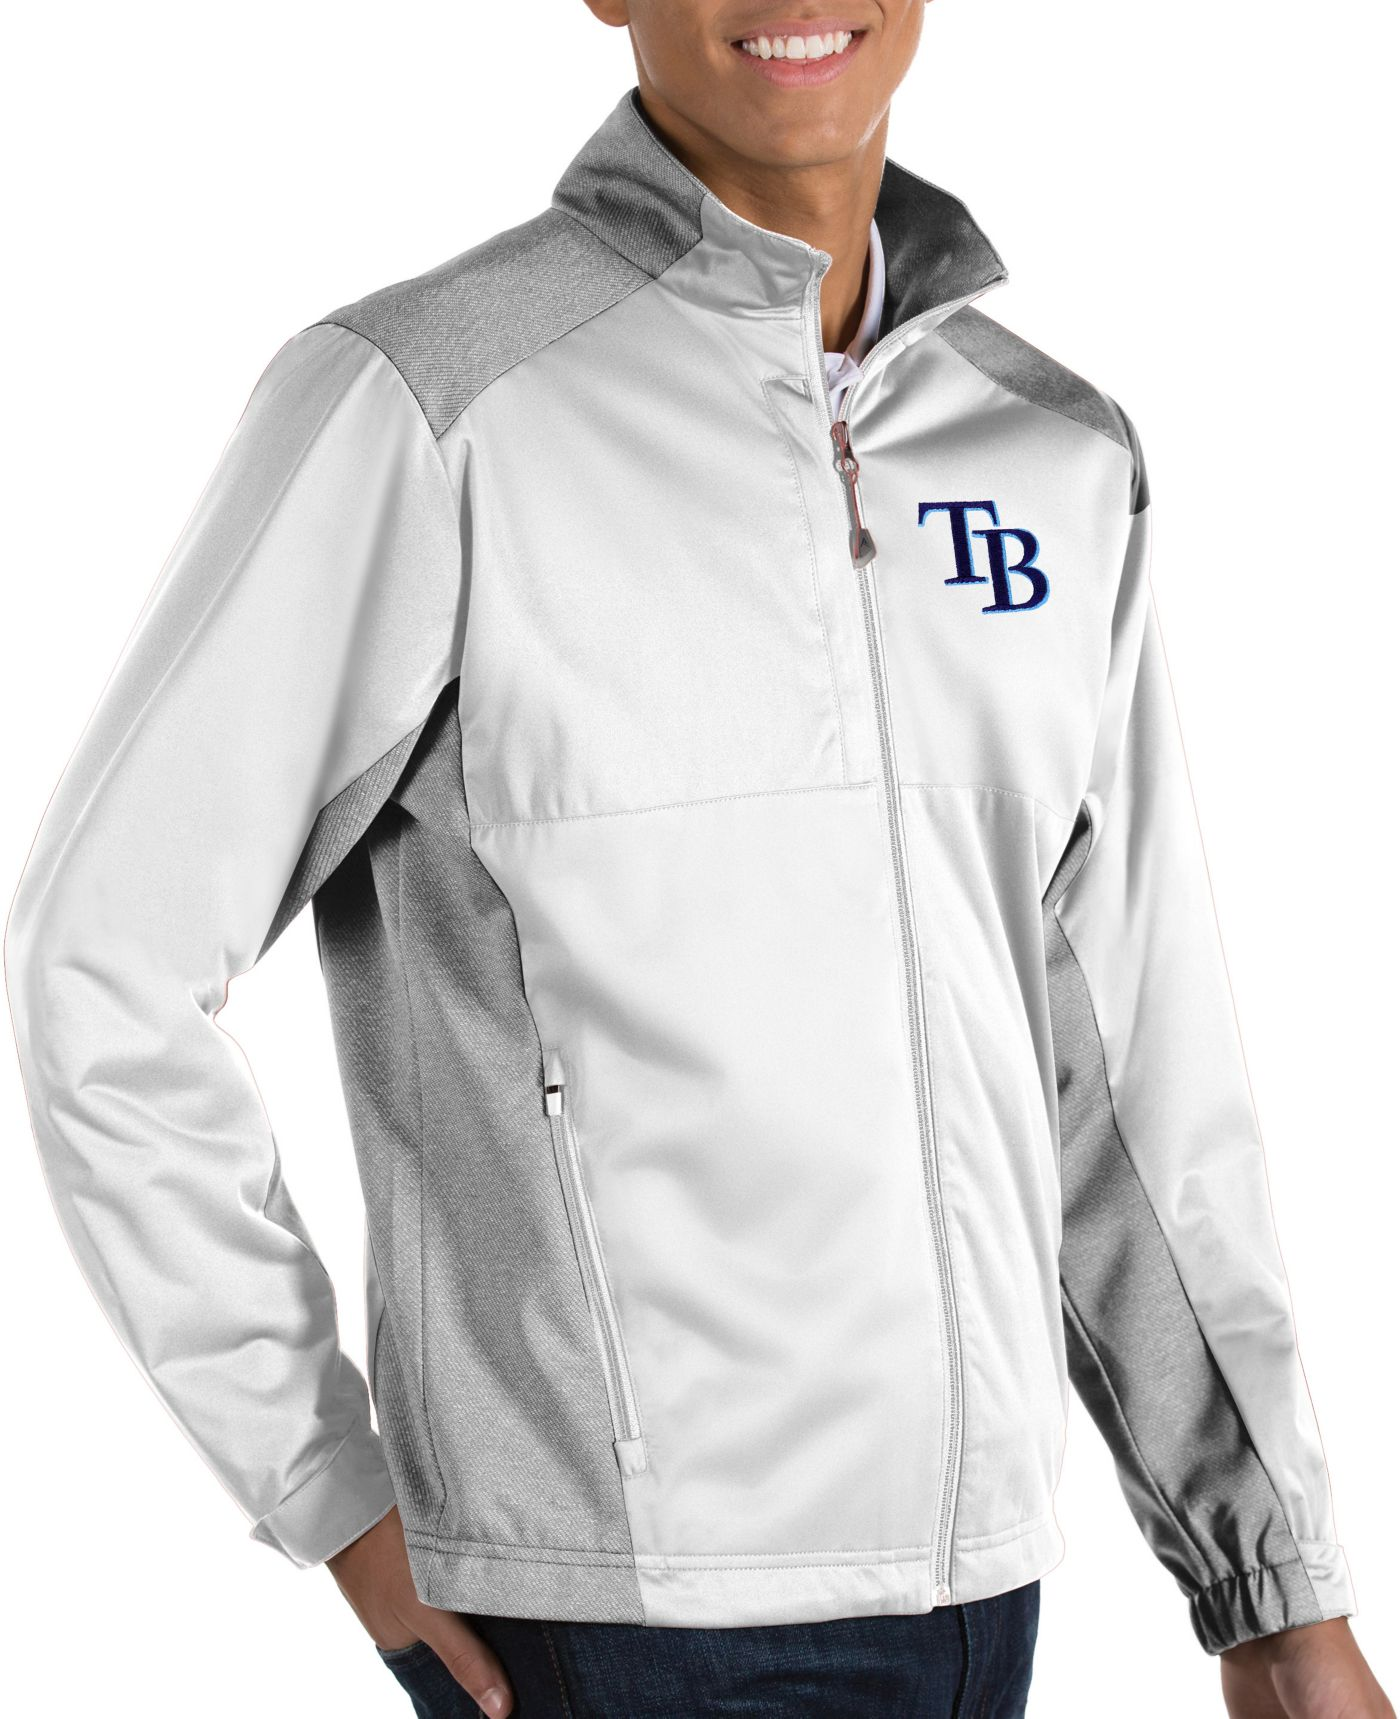 Antigua Men's Tampa Bay Rays Revolve Full-Zip Jacket